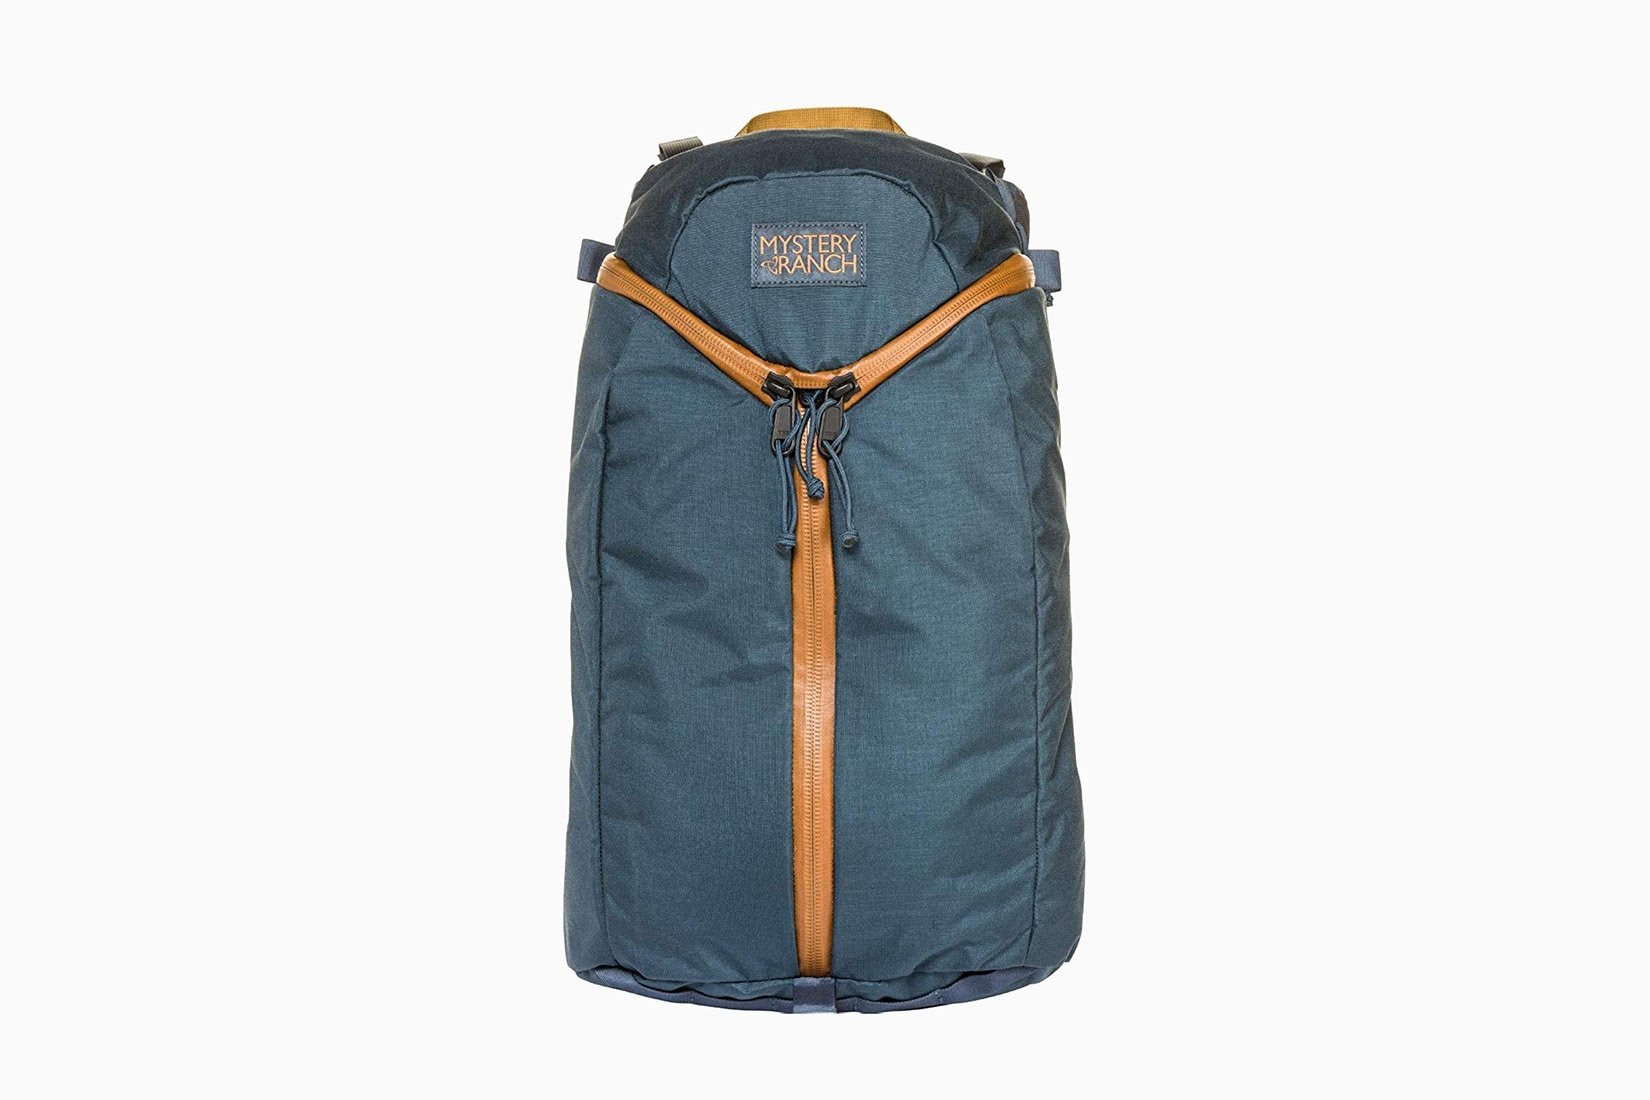 best edc backpack mystery ranch urban assault - Luxe Digital